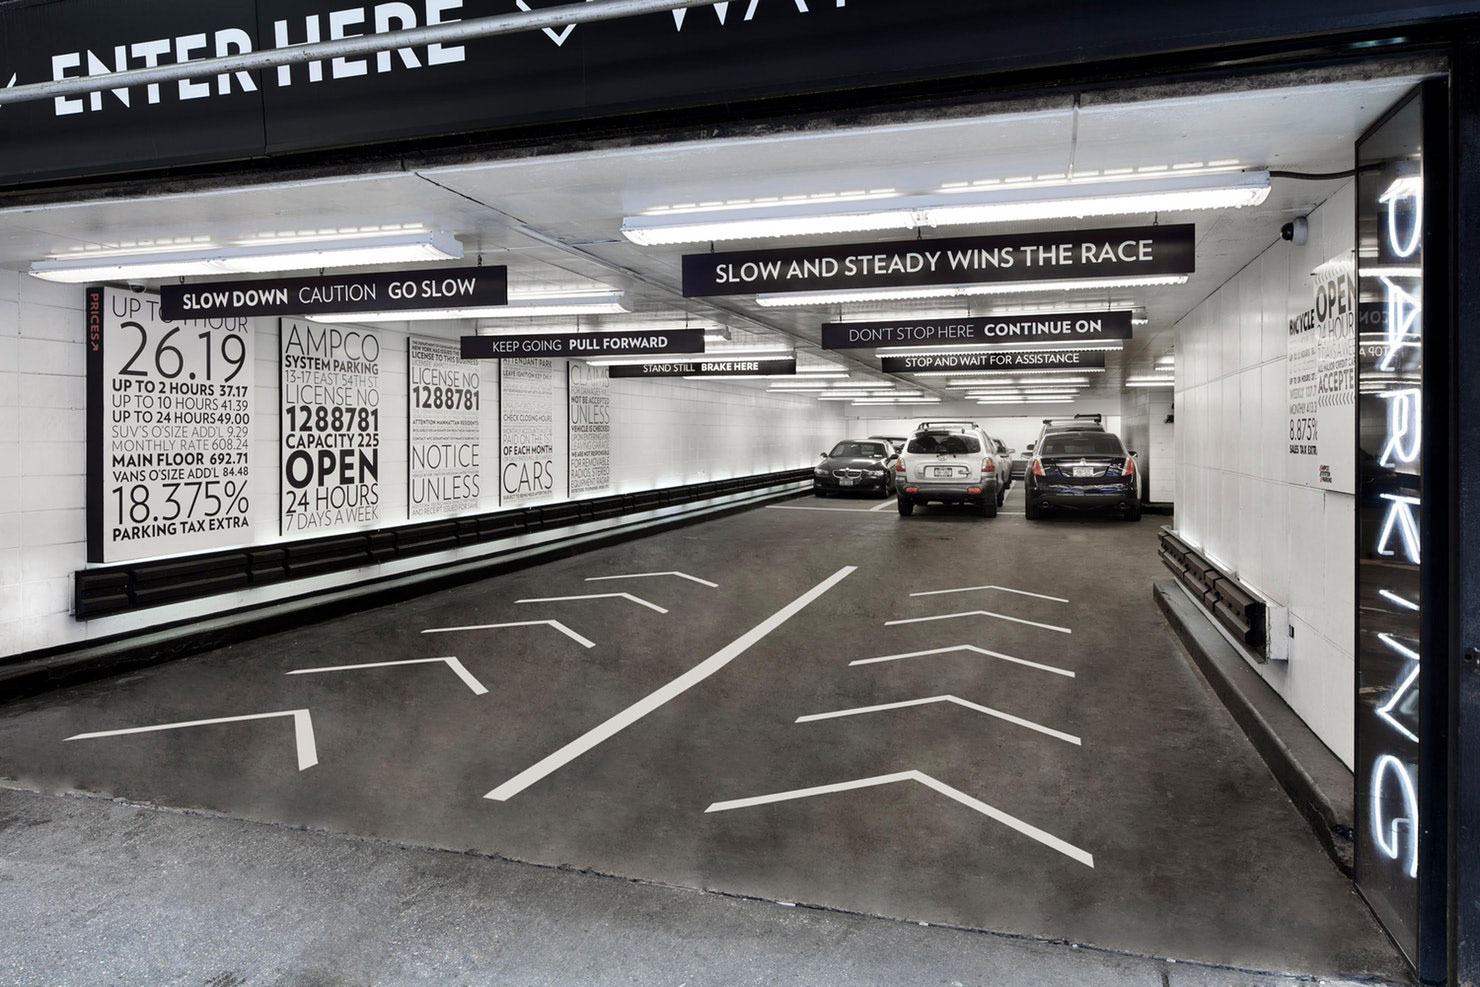 Parking at 13-17 East 54th St. Designed by Pentagram / @enviromeant.com